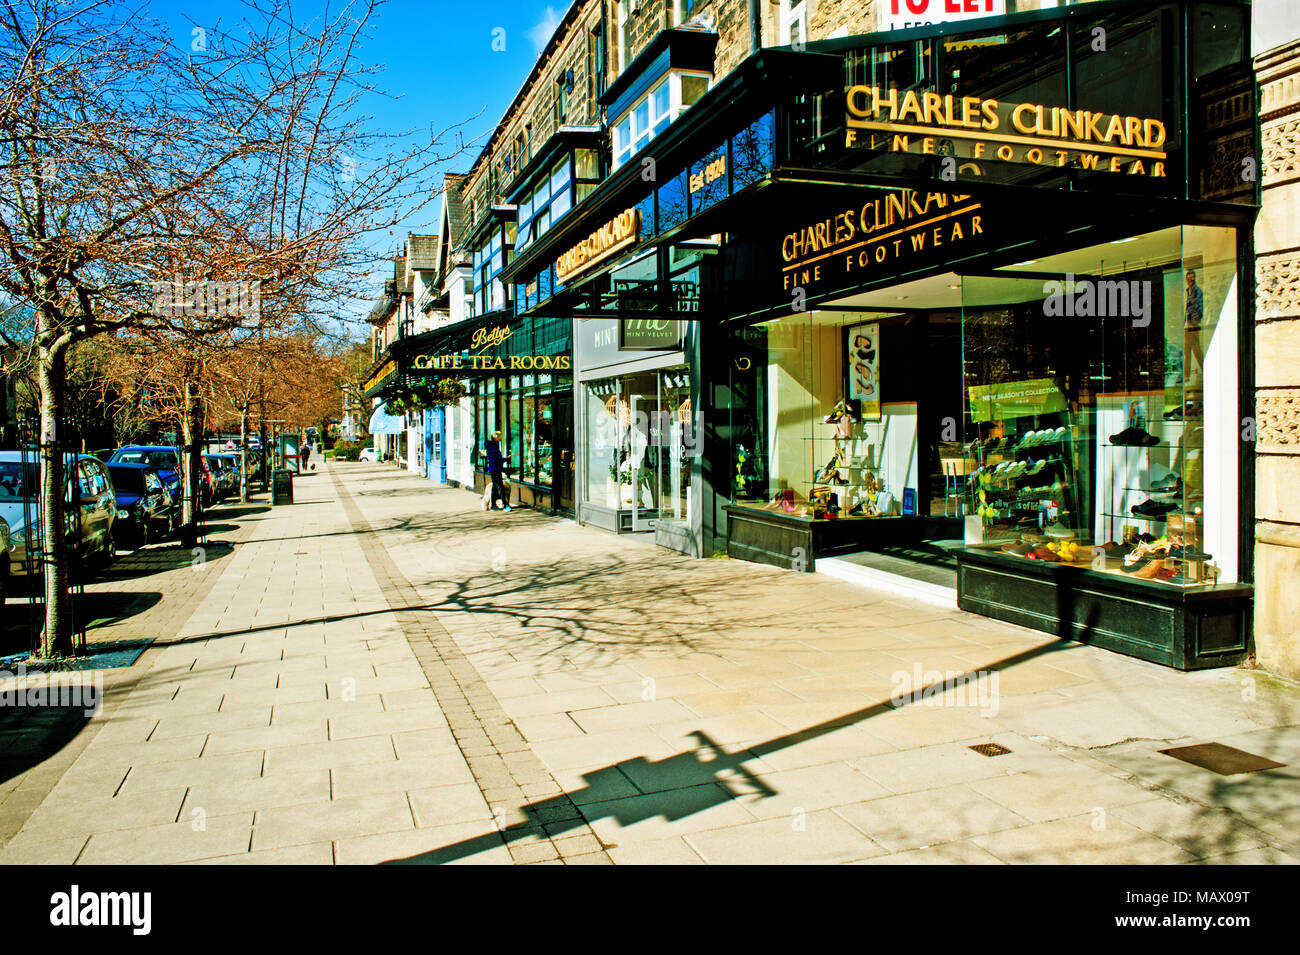 98244411c22b7 Charles Clinkard Footwear shop, Ilkley, West Yorkshire - Stock Image